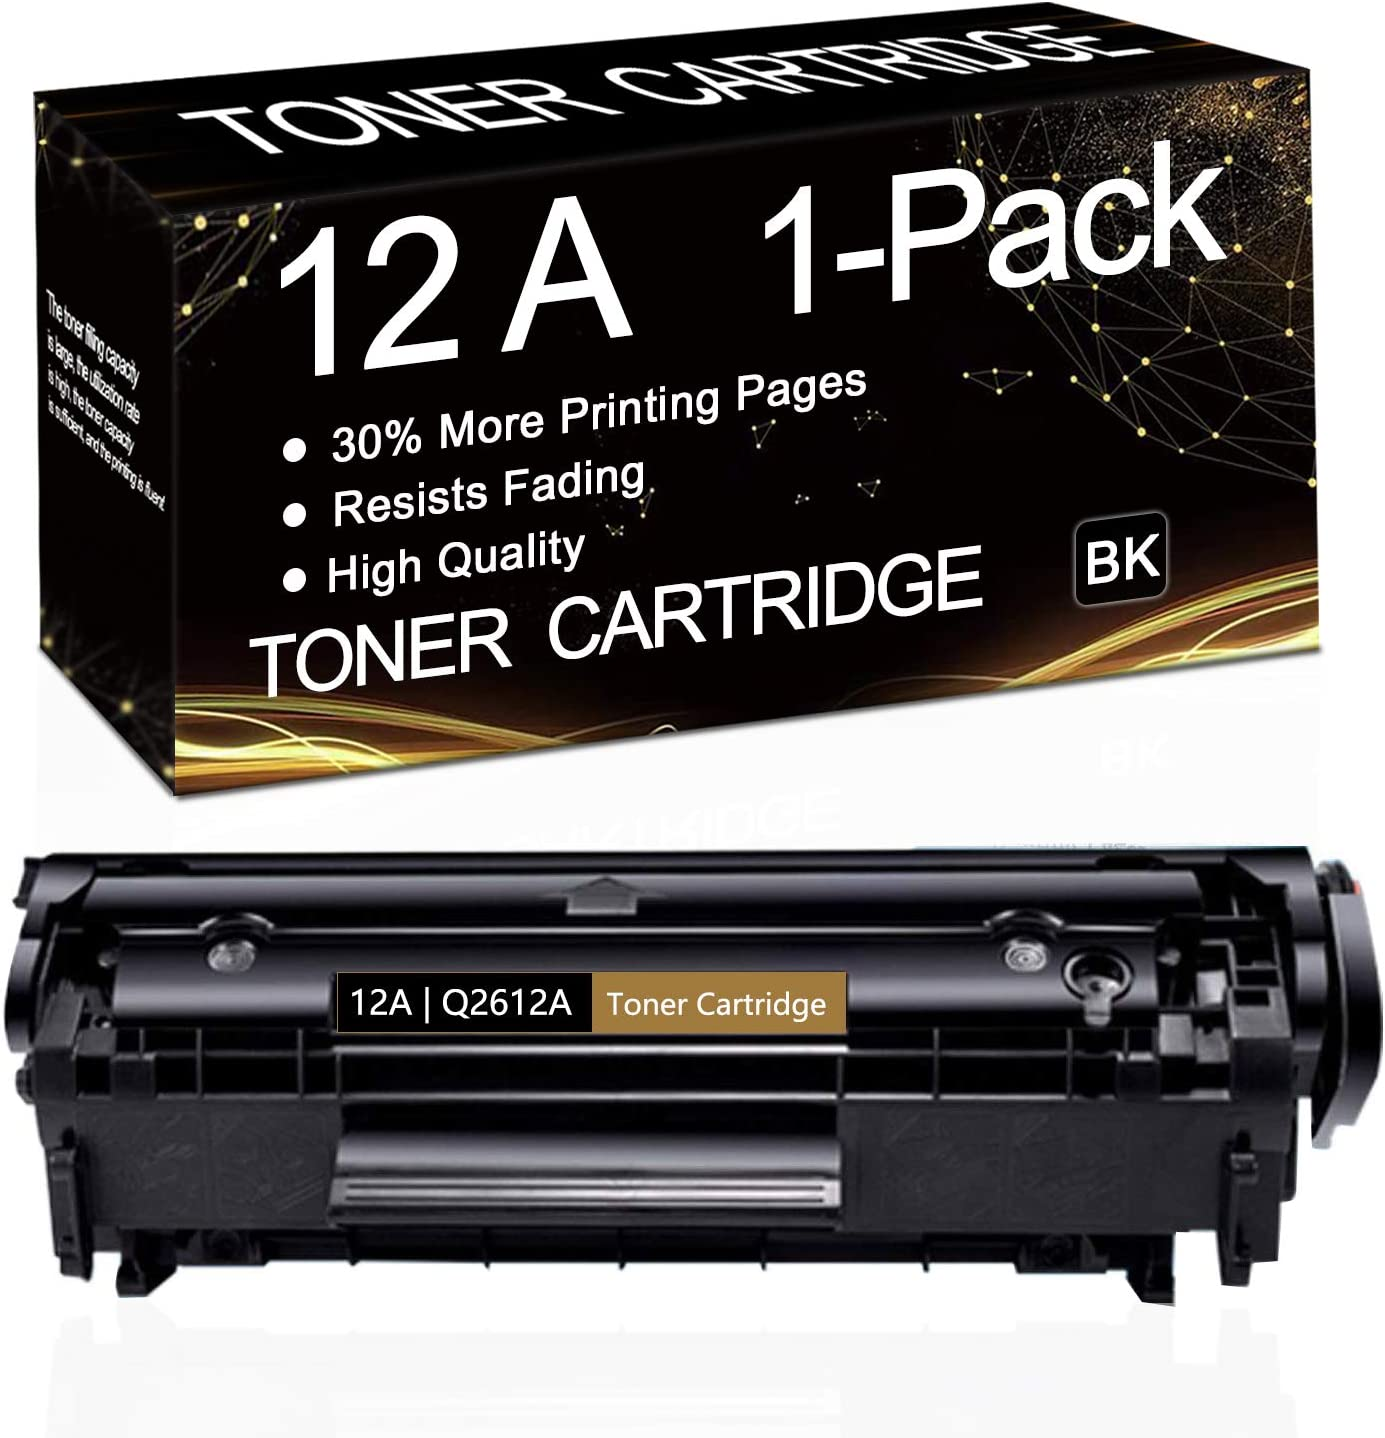 1-Pack (Black) 12A | Q2612A Compatible Toner Cartridge Replacement for HP Laserjet 1020 1022 1022n 1022nw 1010 1012 1015 1018 Printer,Sold by SinaToner.